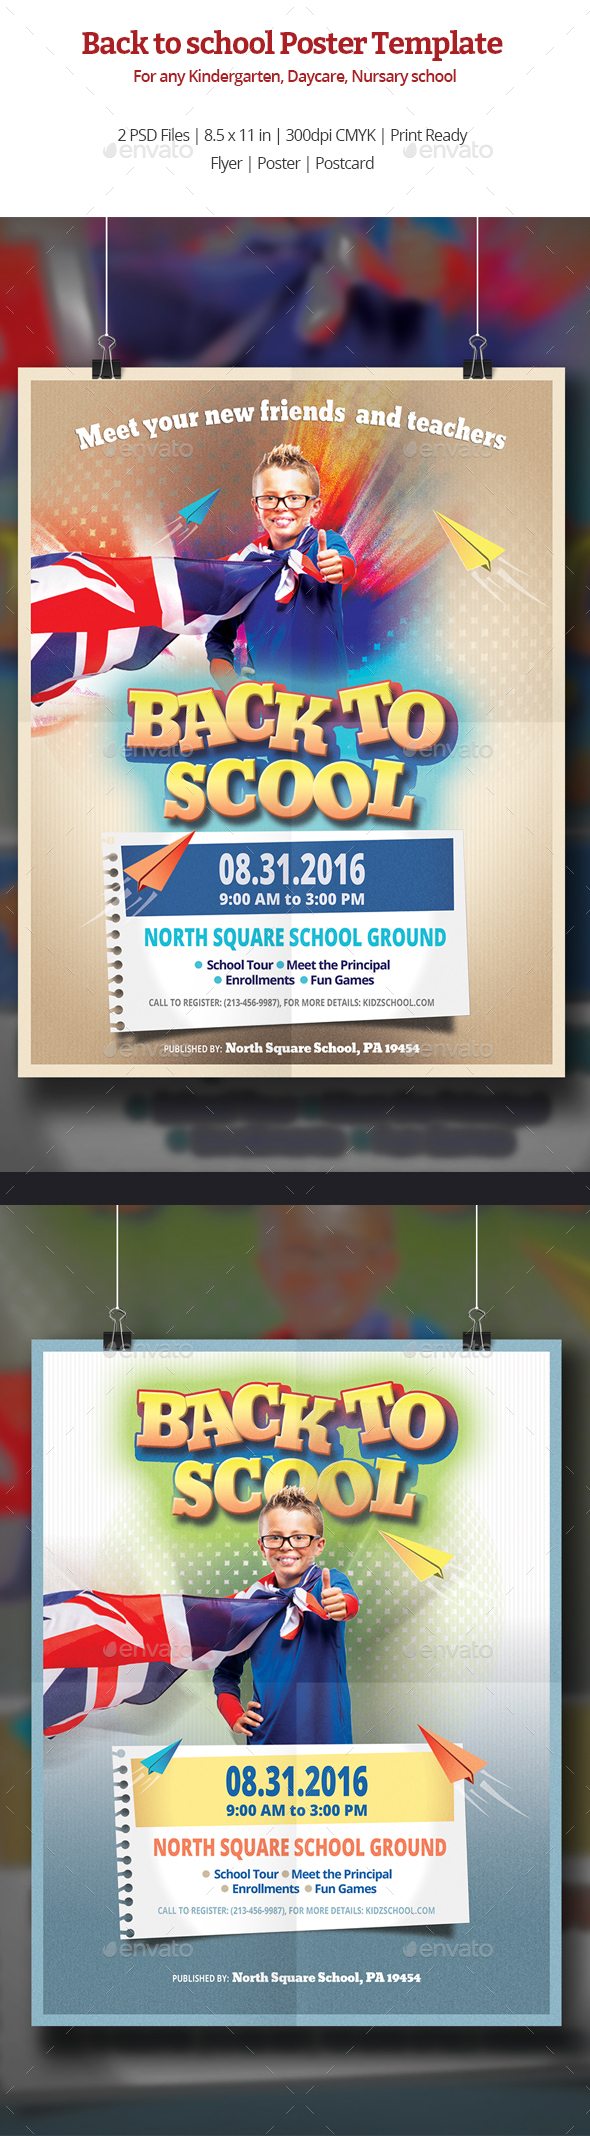 Back to School Poster Templates - Corporate Flyers